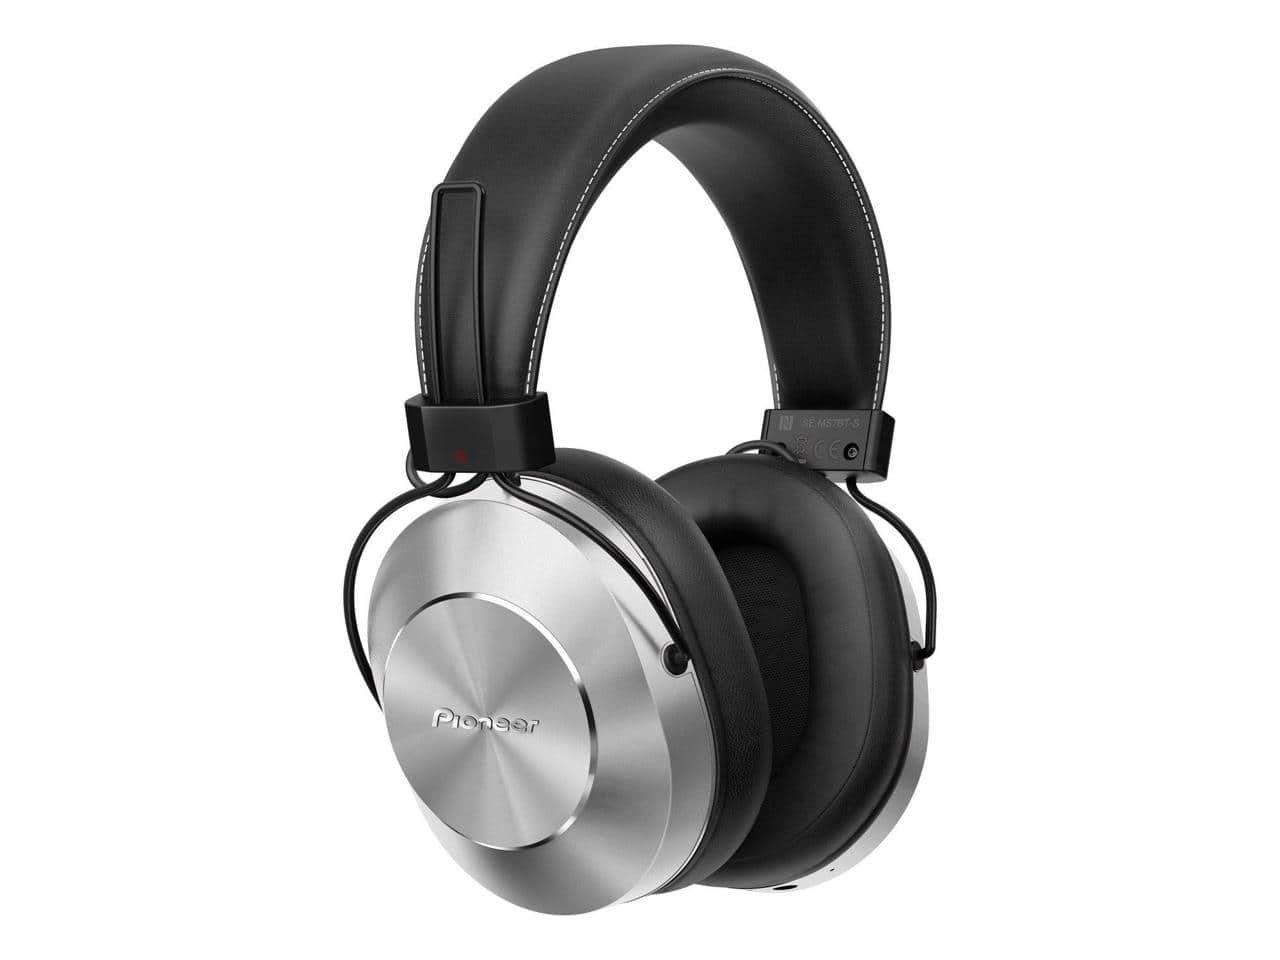 Pioneer SE-MS7BT headphones $79.91 at Sam's Club, & with promo code at Newegg(expired)